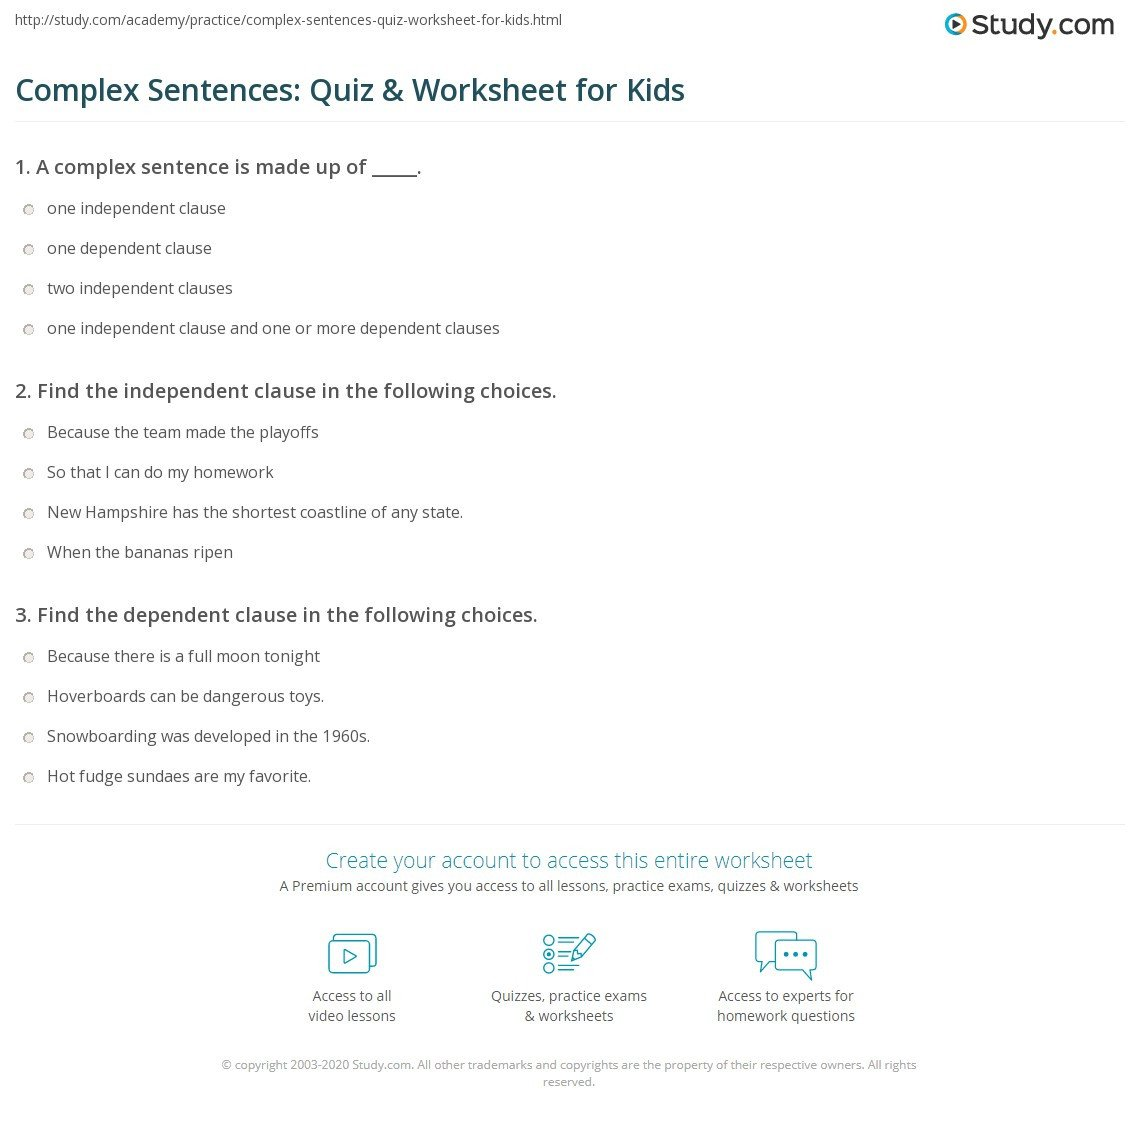 Complex Sentence Worksheets 4th Grade Plex Sentences Quiz & Worksheet for Kids